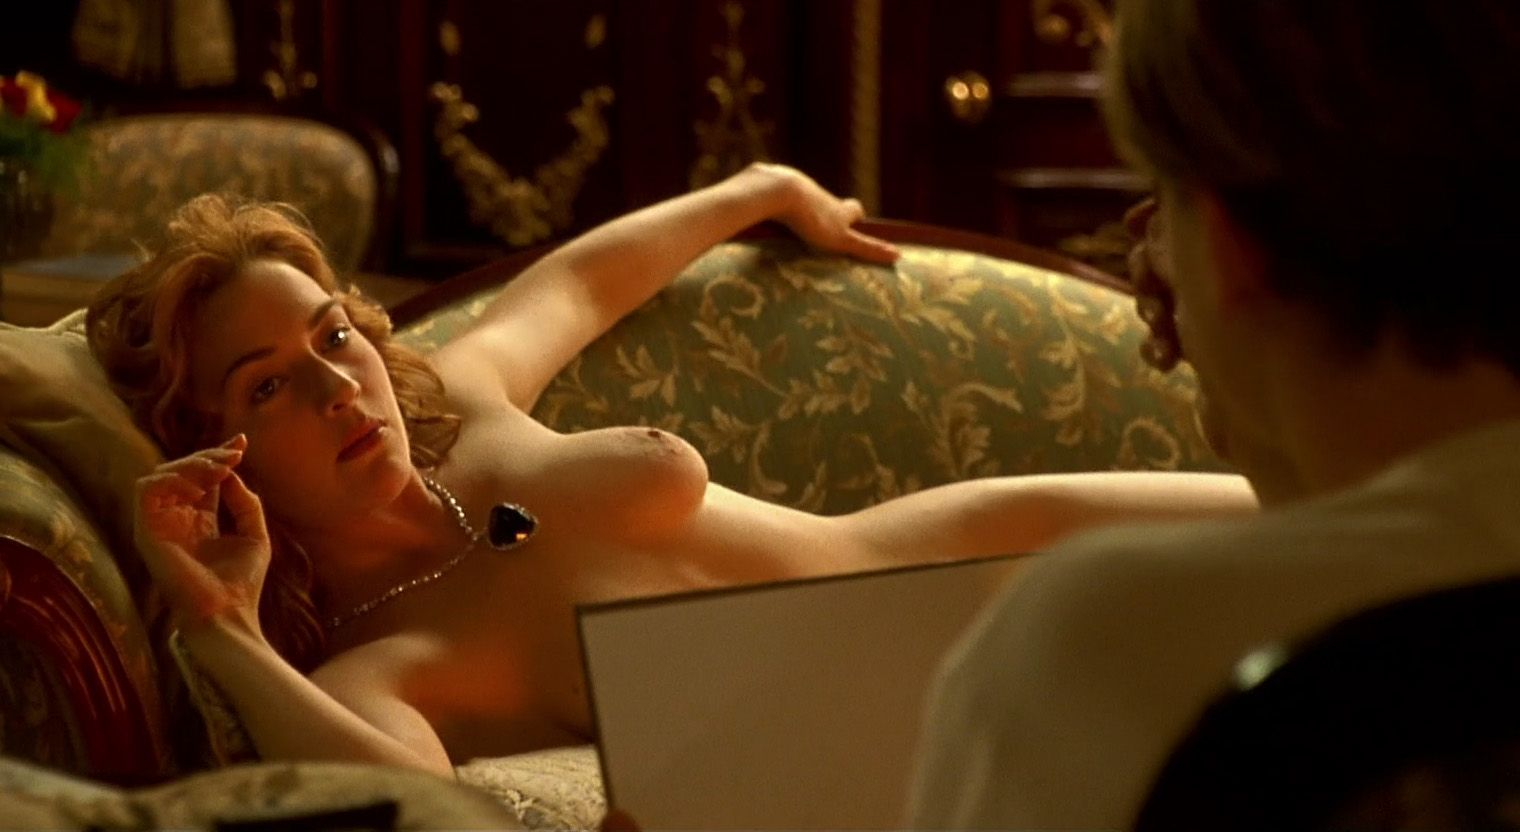 Kate Winslet Nude  Free Nude Celebrity Vidcaps From Movie -2840